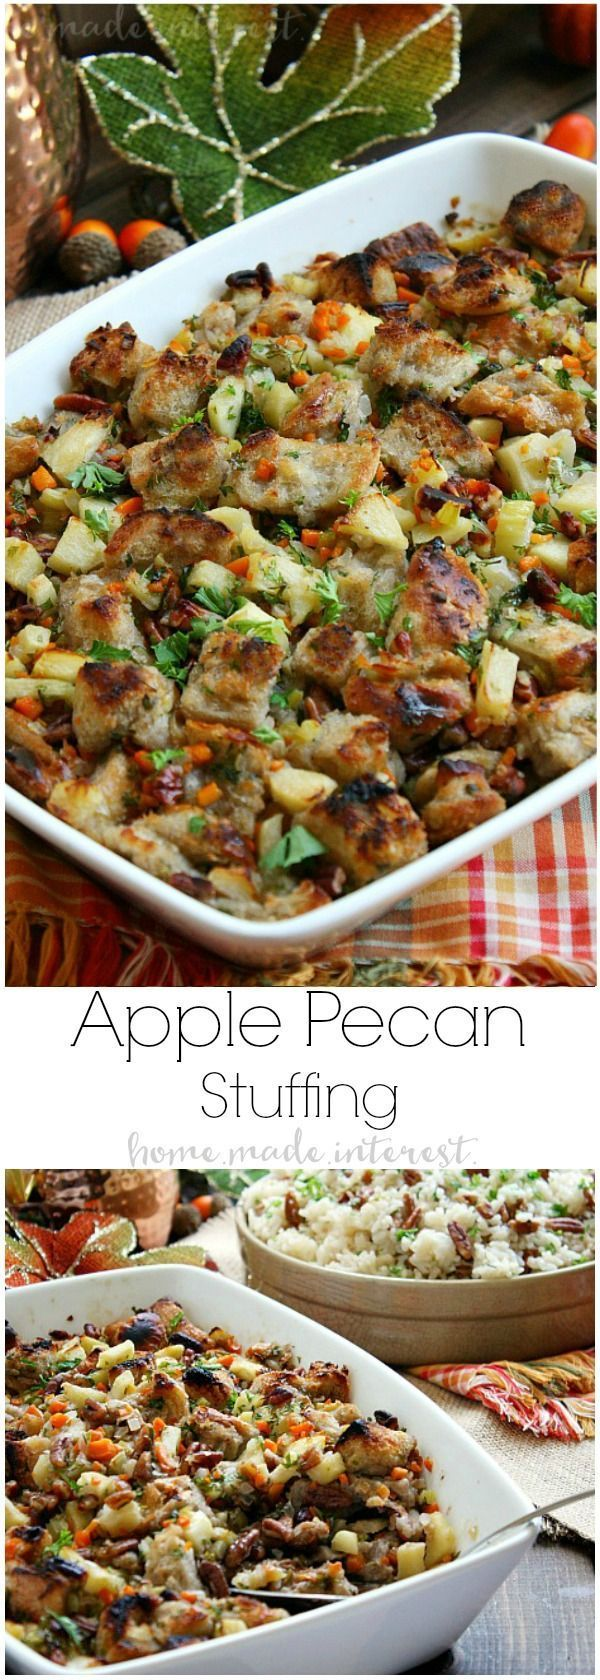 Apple Pecan Stuffing recipe is a delicious blend of buttery bread cubes, apples, and pecans. Make this Thanksgiving stuffing recipe for your family and friends for Thanksgiving dinner. You can stuff the turkey with it or make it in a separate casserole dish. It's one of the best Thanksgiving stuffing recipes I've ever tasted!